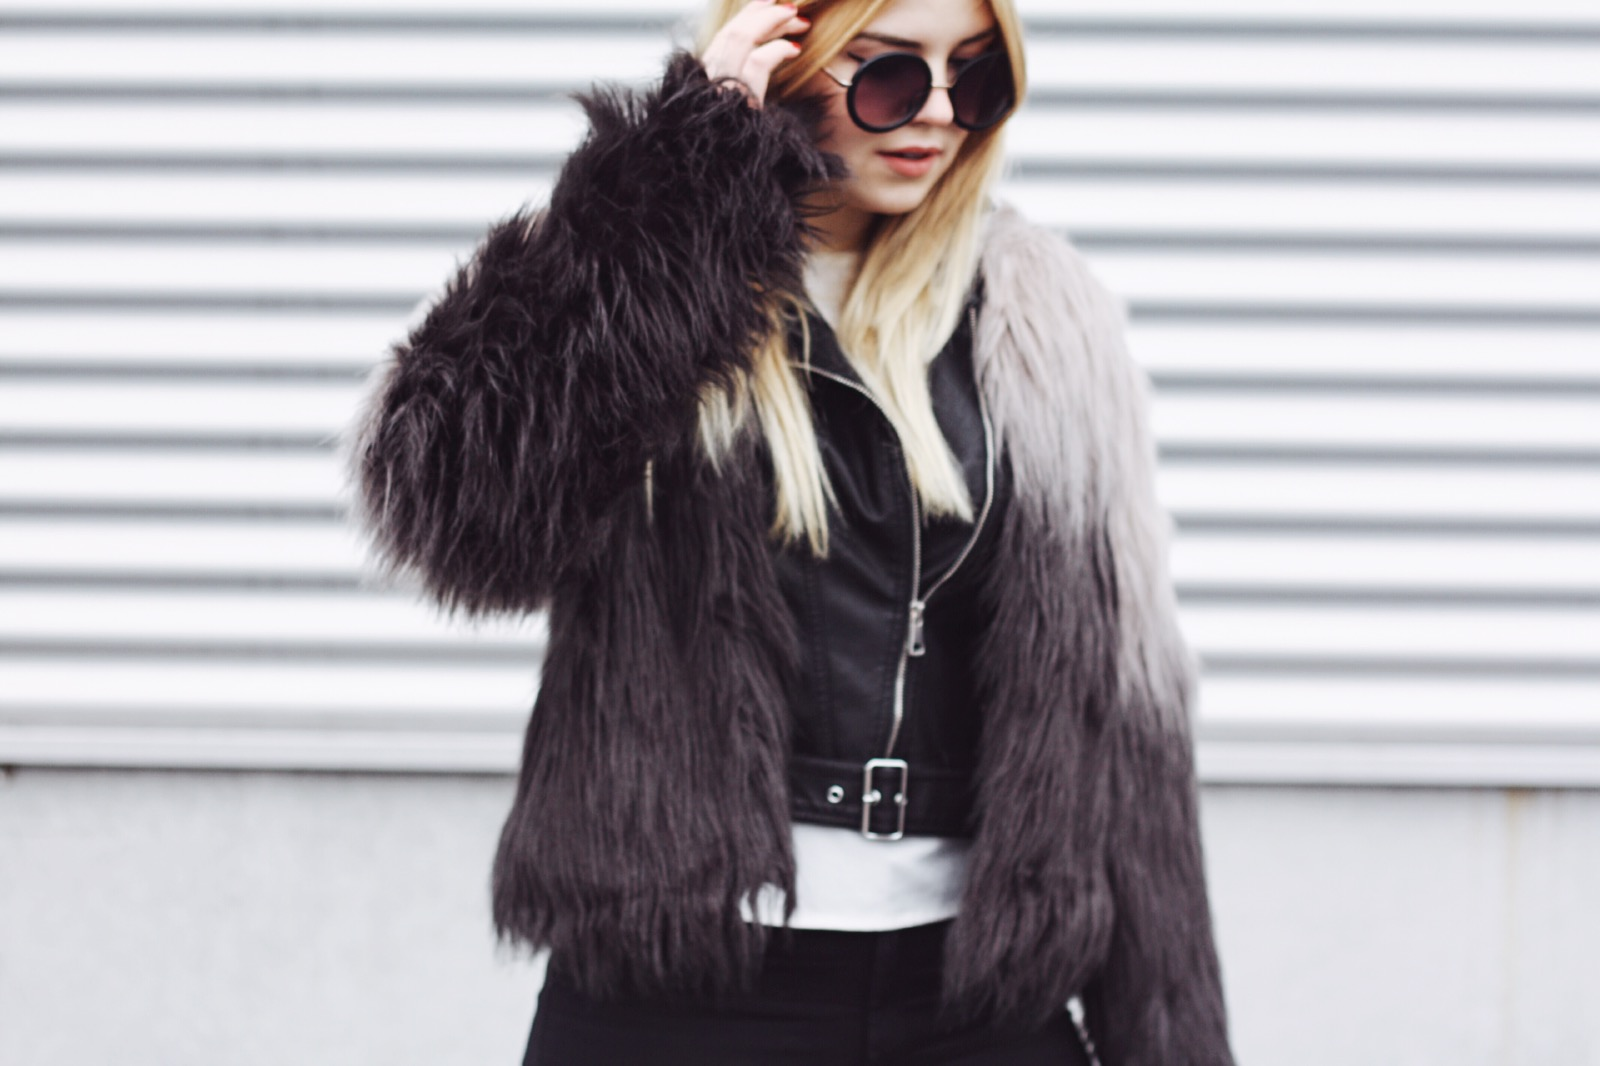 modeblogger_michelle_roessel_itsgoldie_trend_hannover